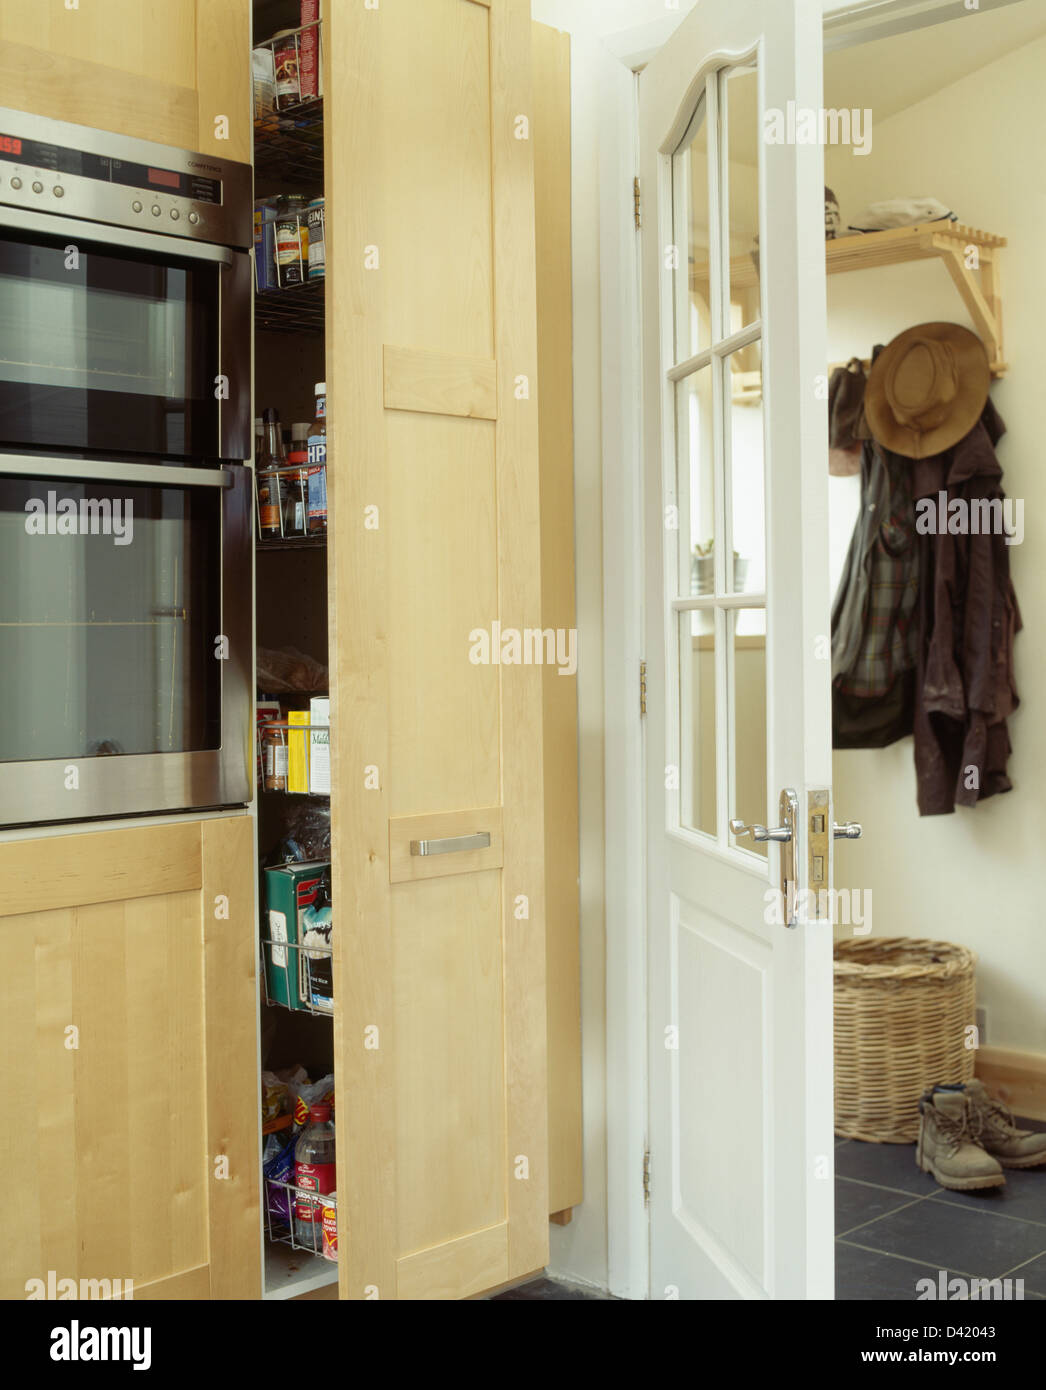 Pull Out Storage Unit In Modern Kitchen With Door Open To ...